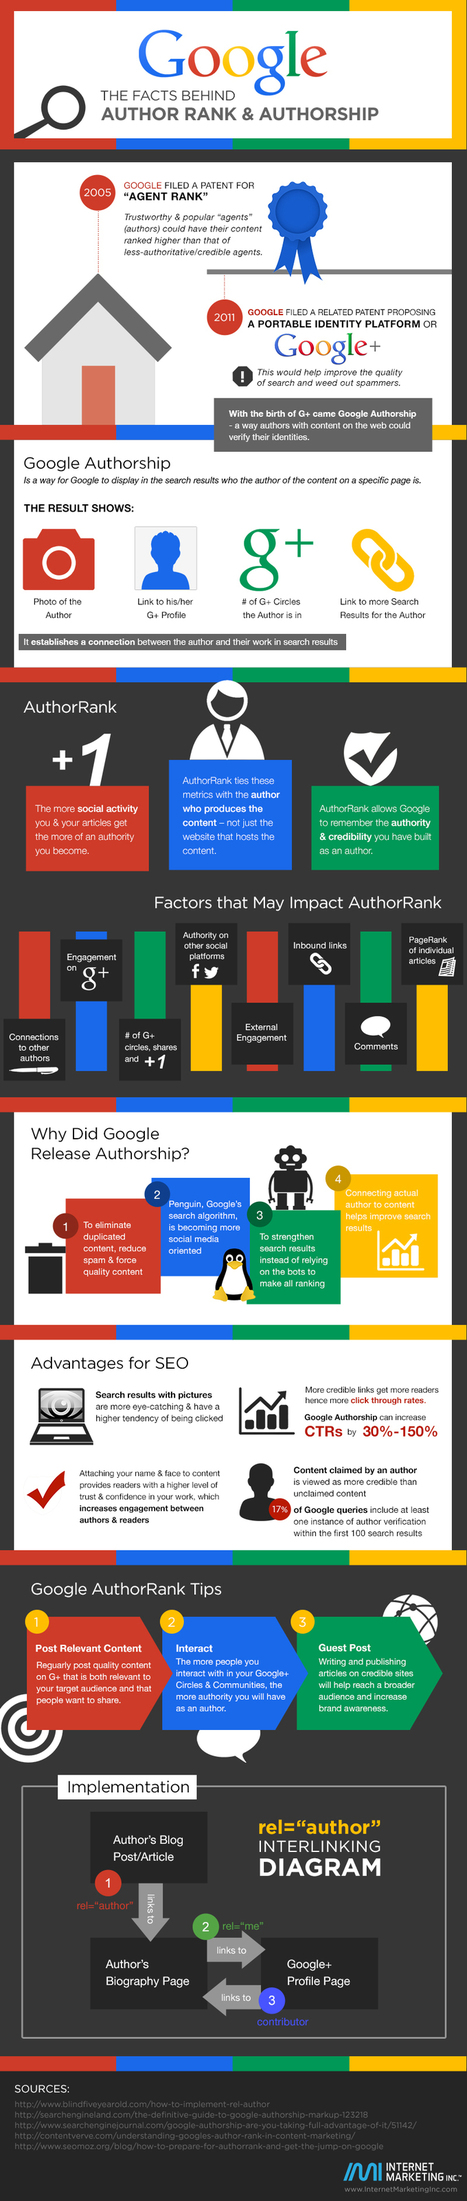 Google+ : L' AuthorShip bien expliqué dans cette infographie - #Arobasenet | SEM Search-Engine-Marketing | Scoop.it